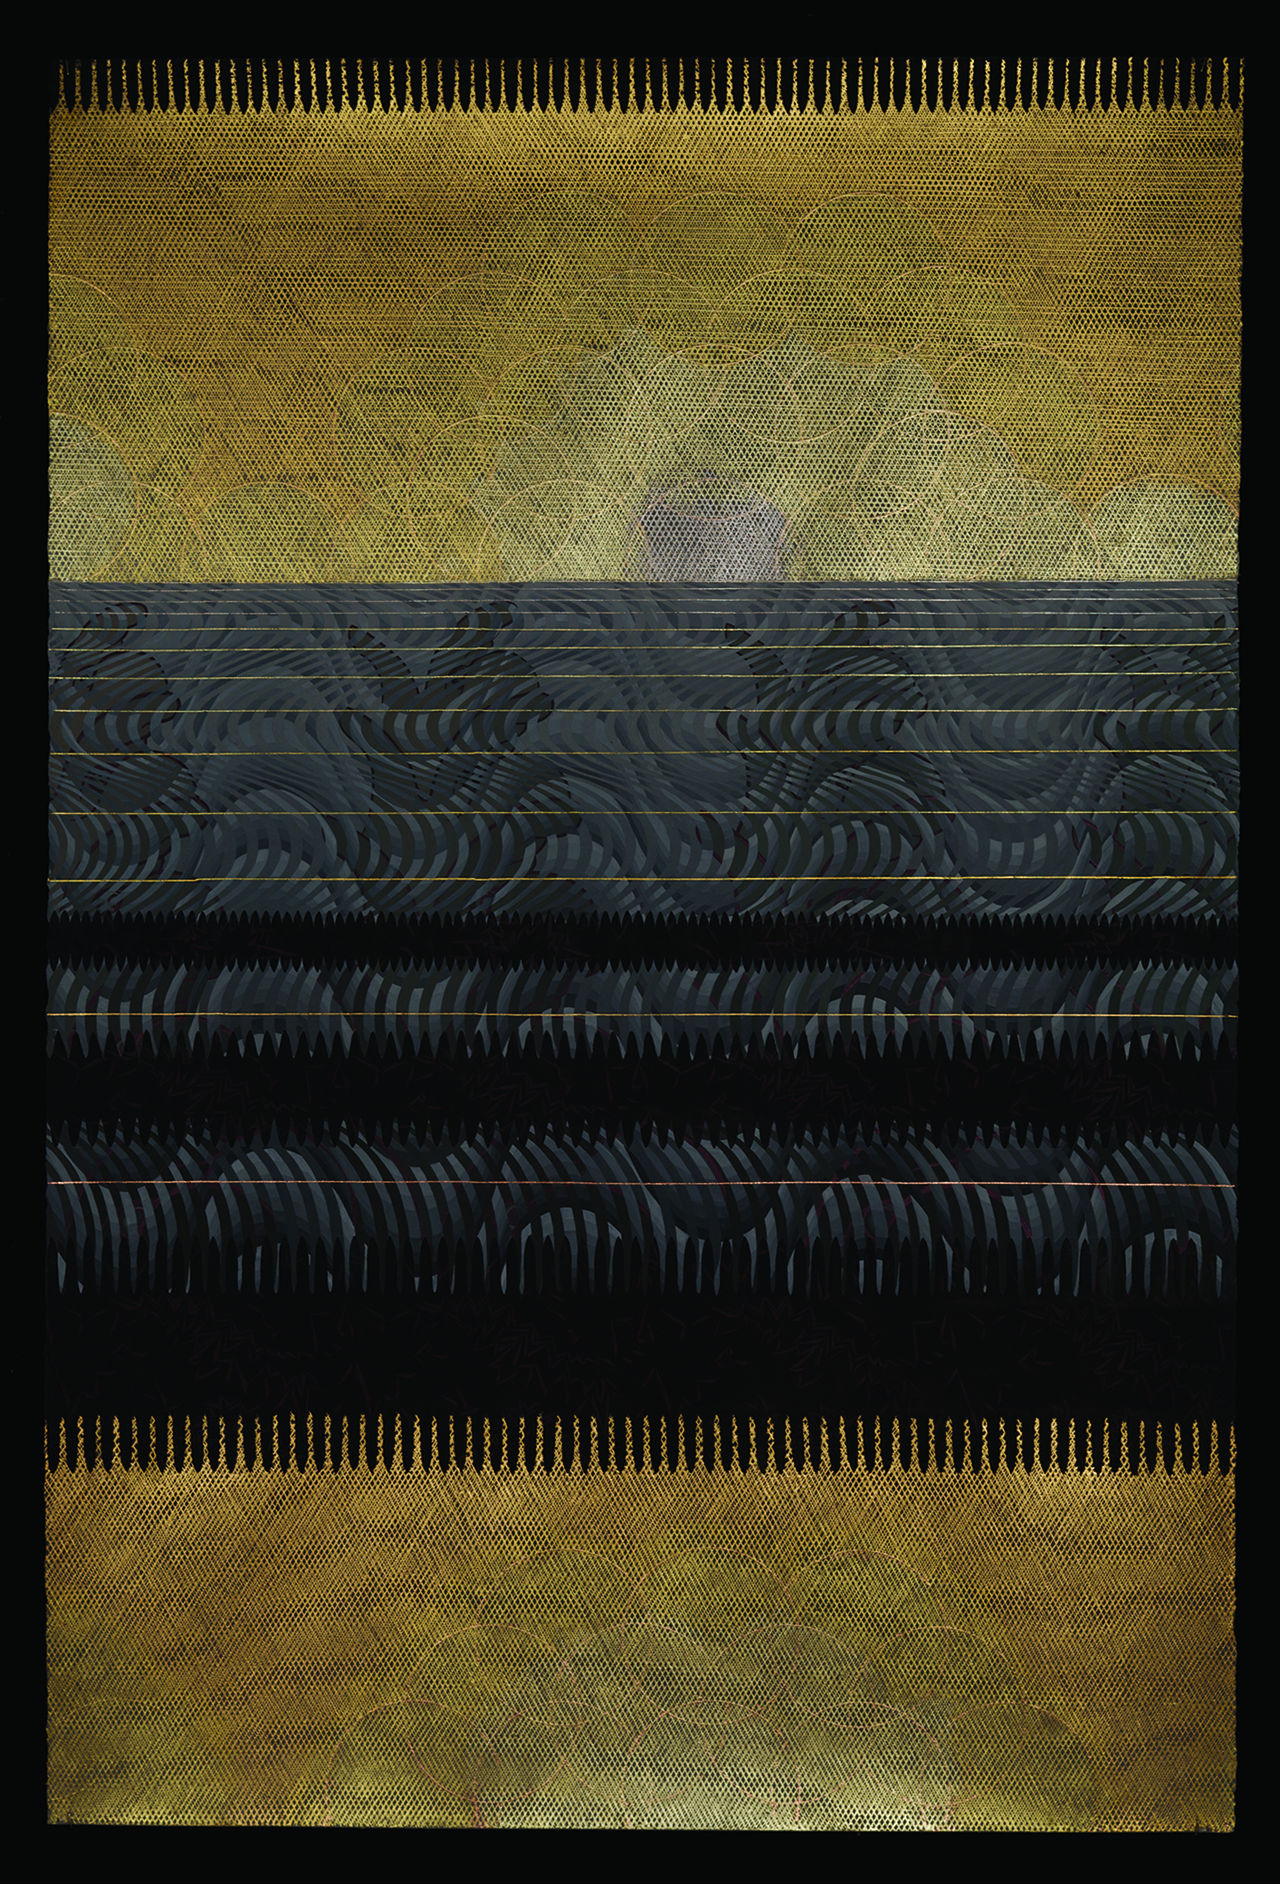 Zoe Pettijohn Schade/ Ocean Moire/ 2009/ Gouache with Gold, Palladium and Copper Leaf on Paper/ 60 x 40 inches